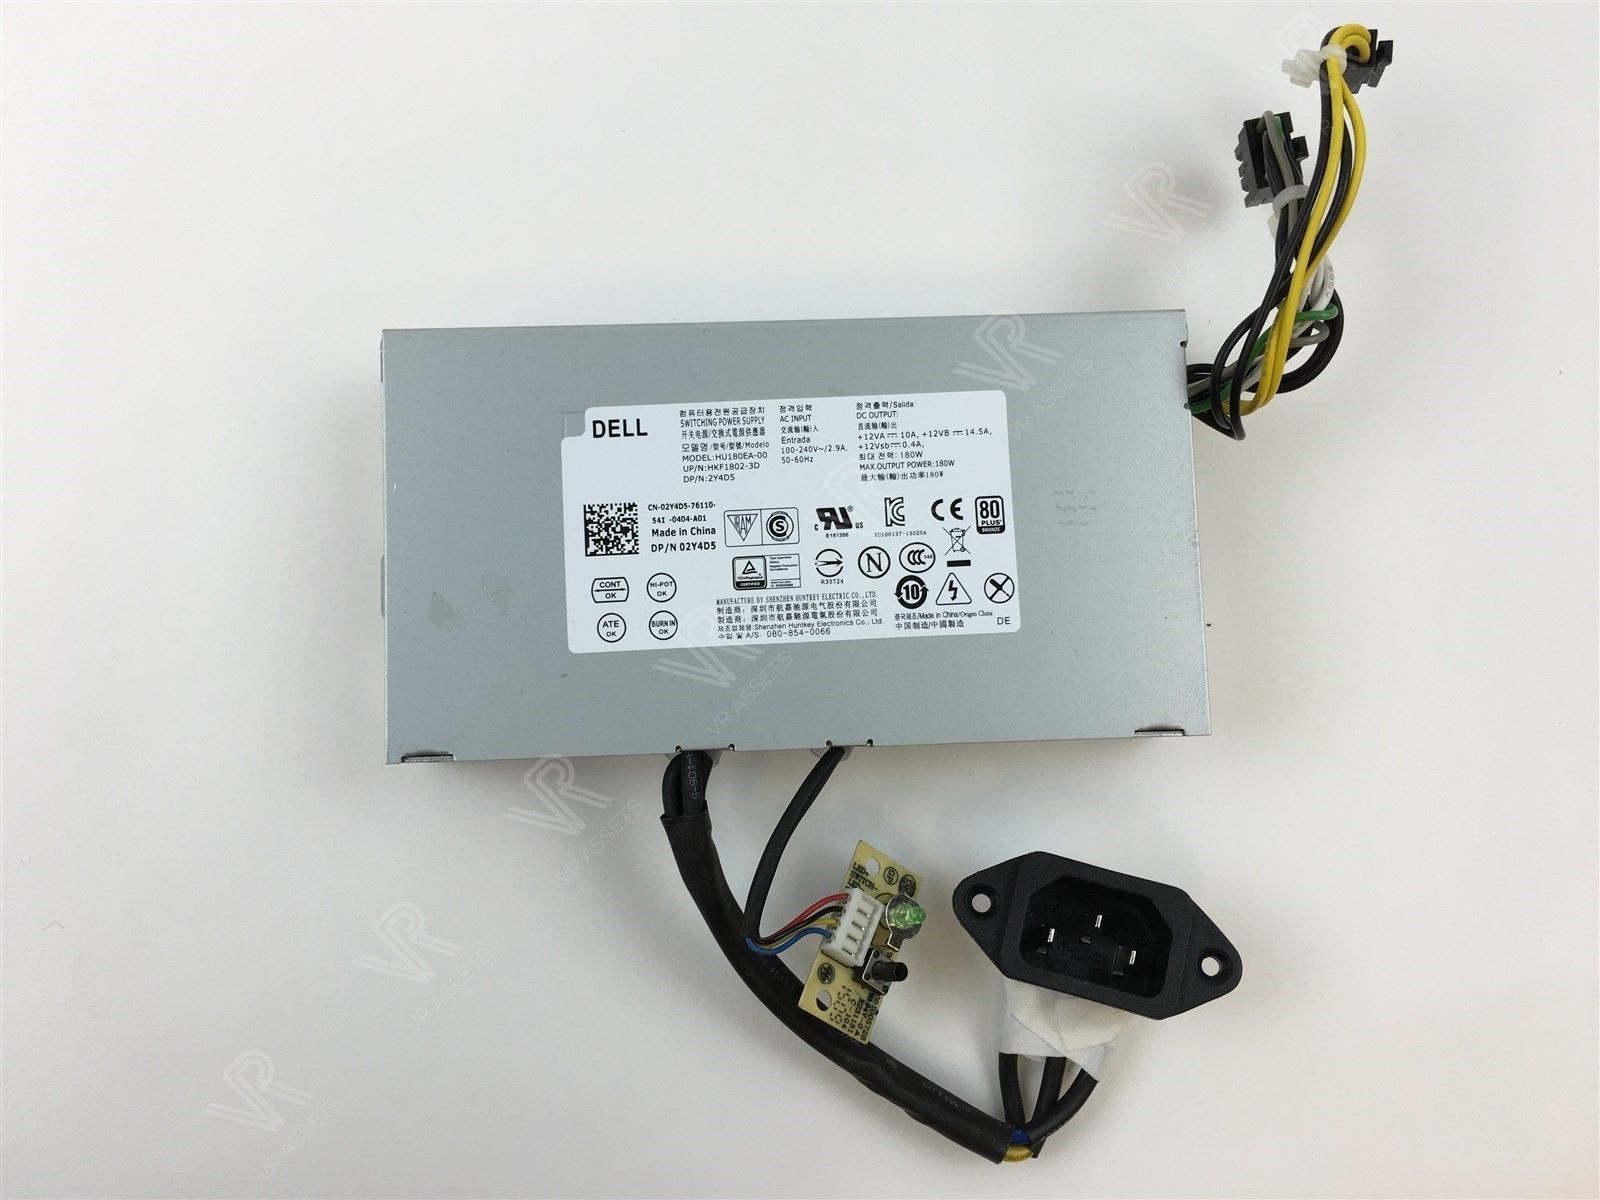 Dell Optiplex 3030 AIO 180W Power Supply HU180EA-00 HKF1802-3D 2Y4D5 02Y4D5